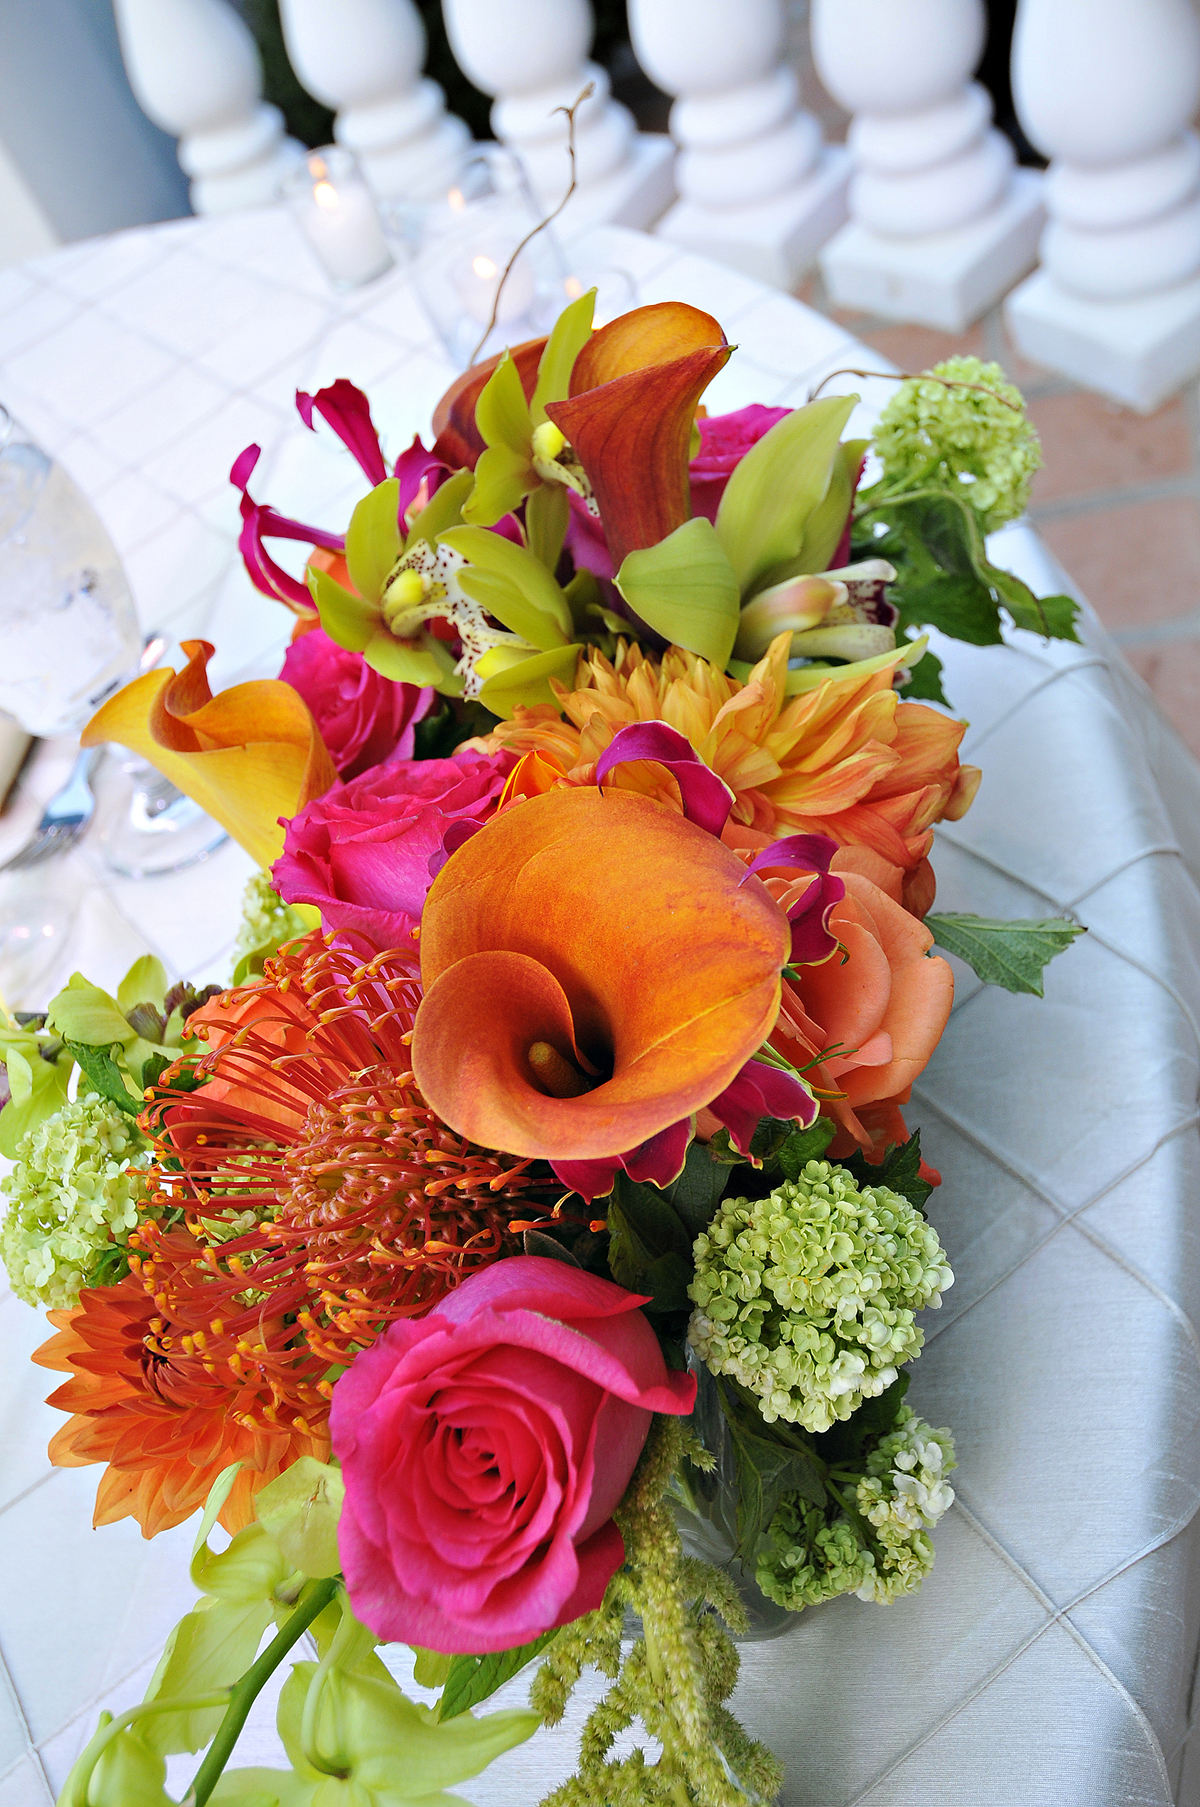 List Of Flowers For The Wedding